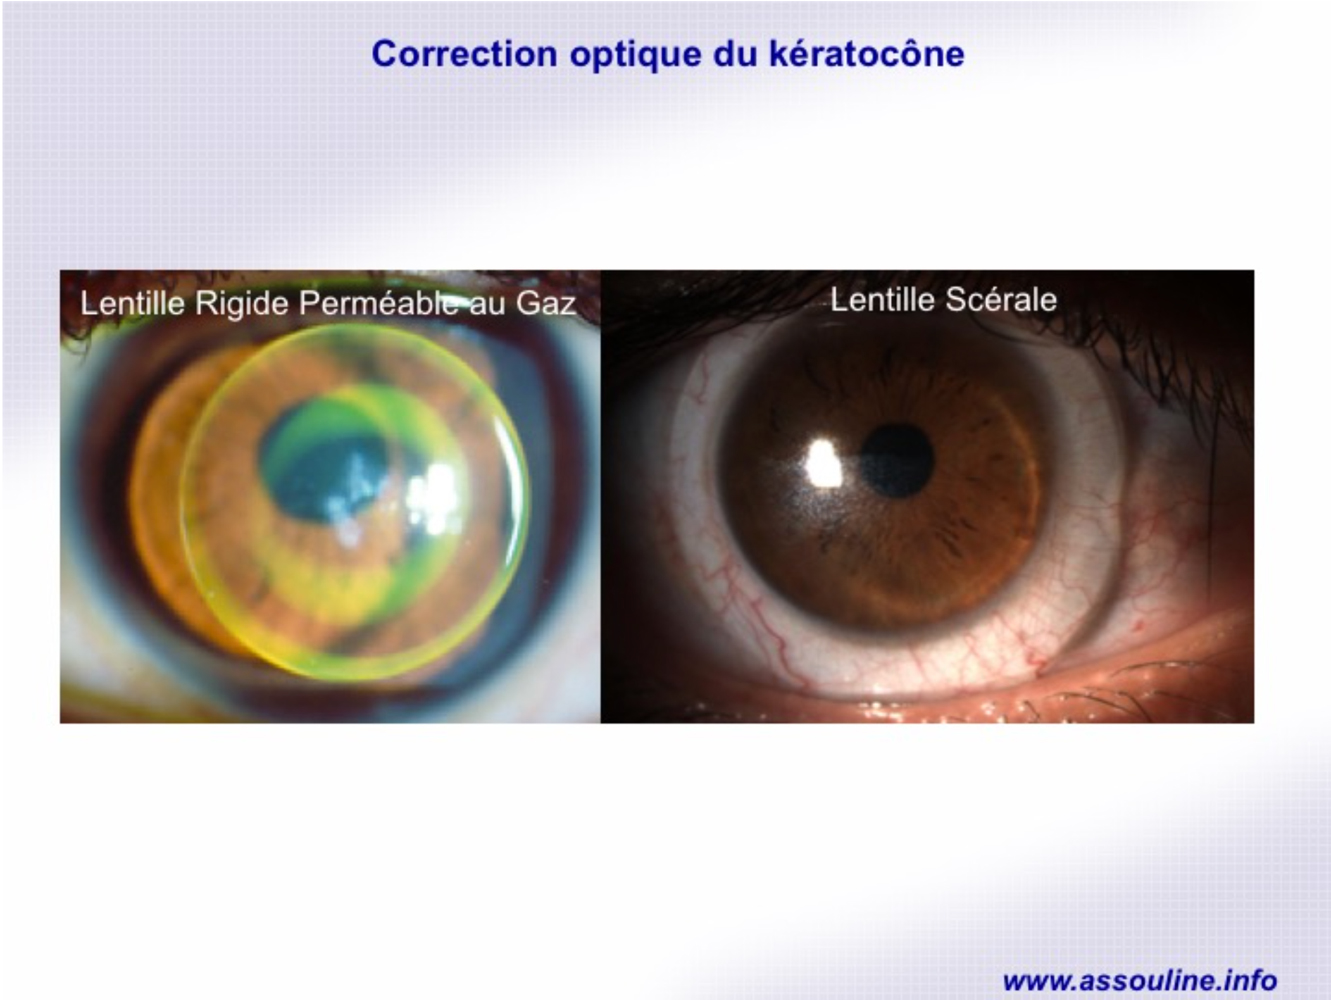 Correction optique du kératocône